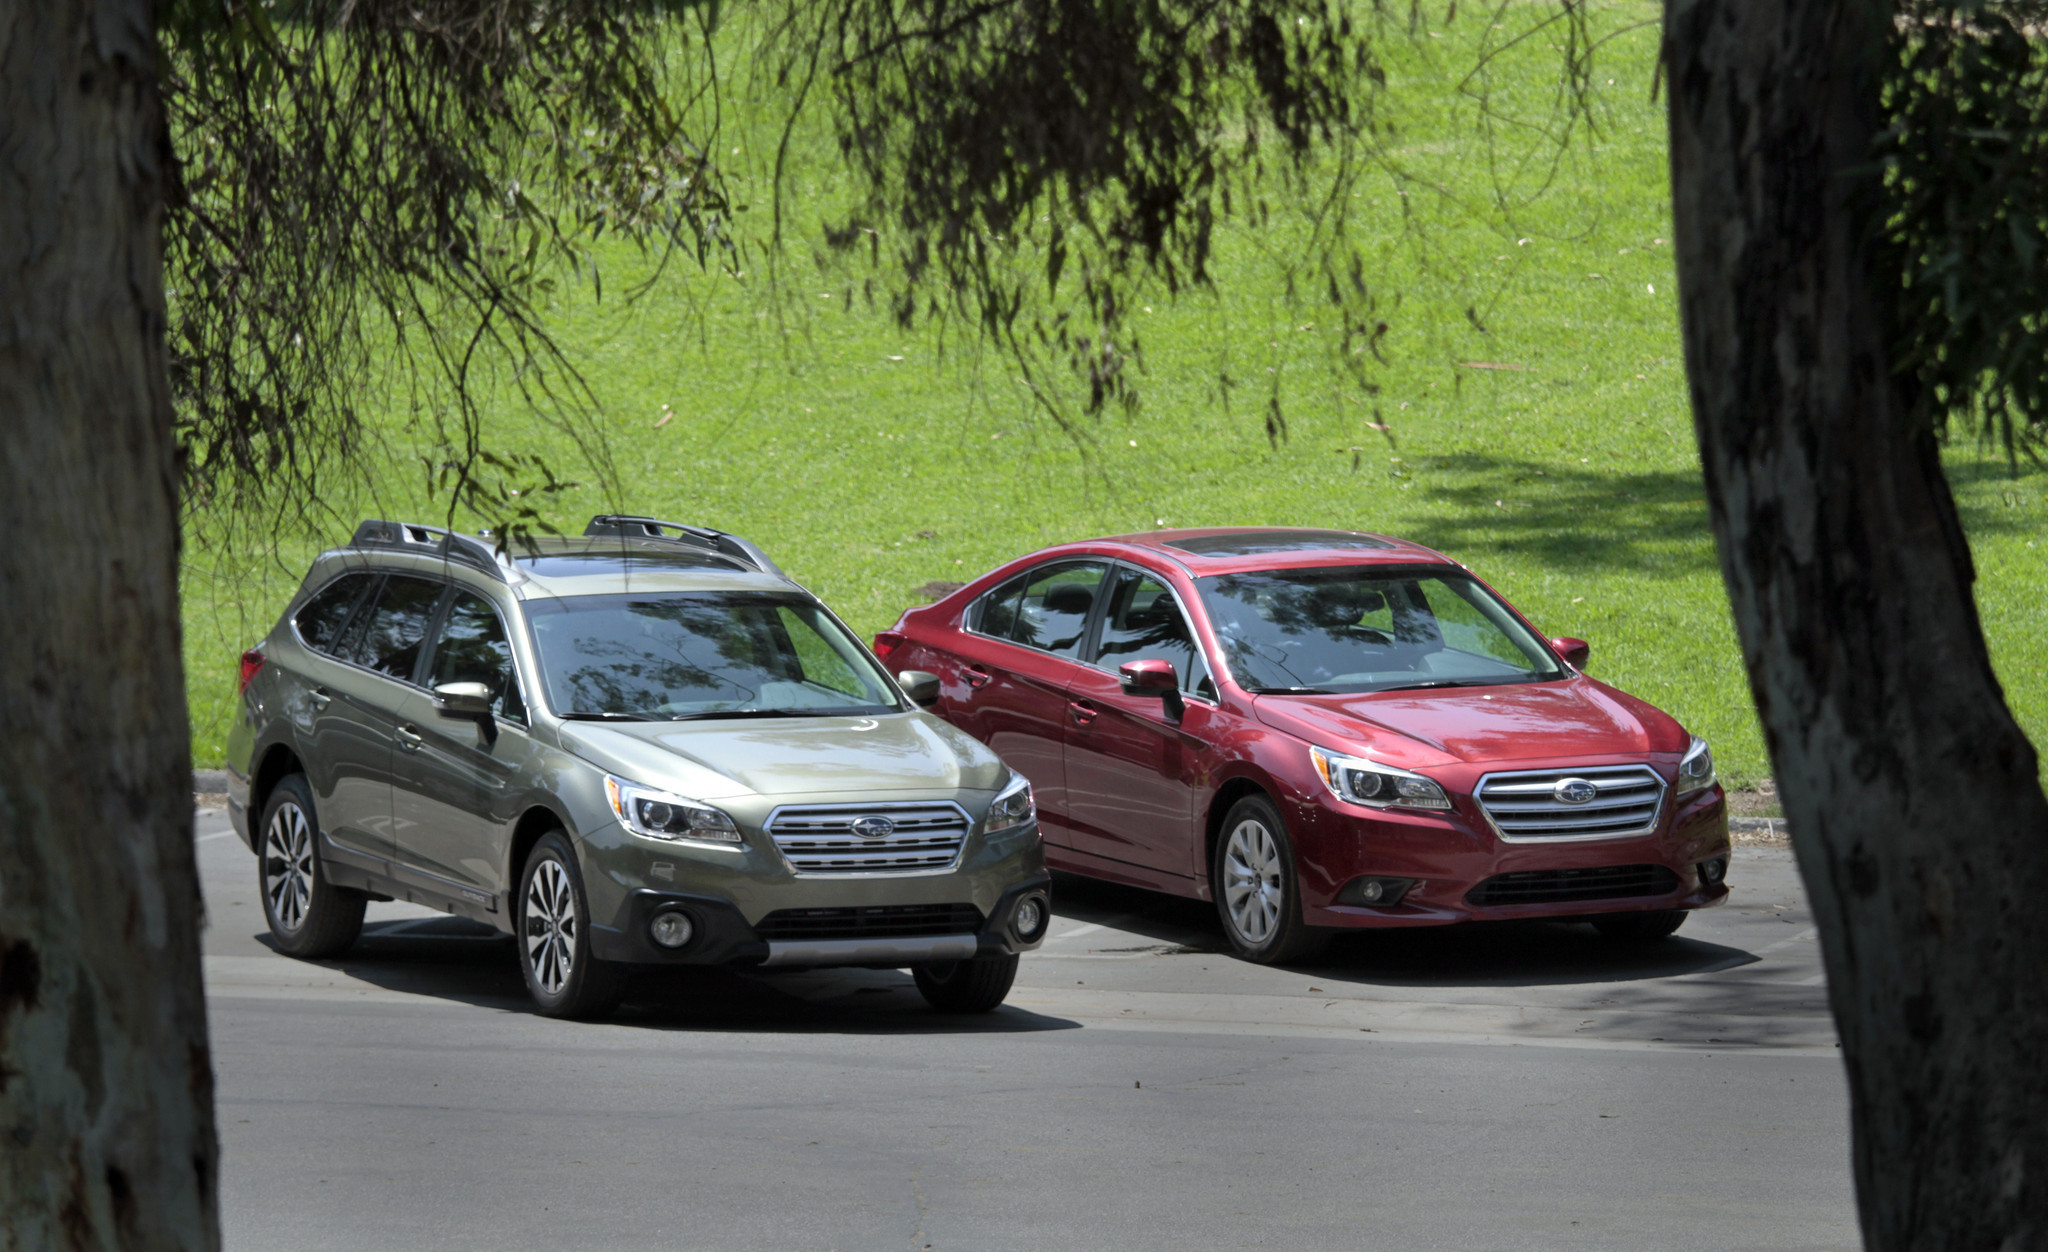 Auto review subaru revs up tech safety and style of legacy outback la times